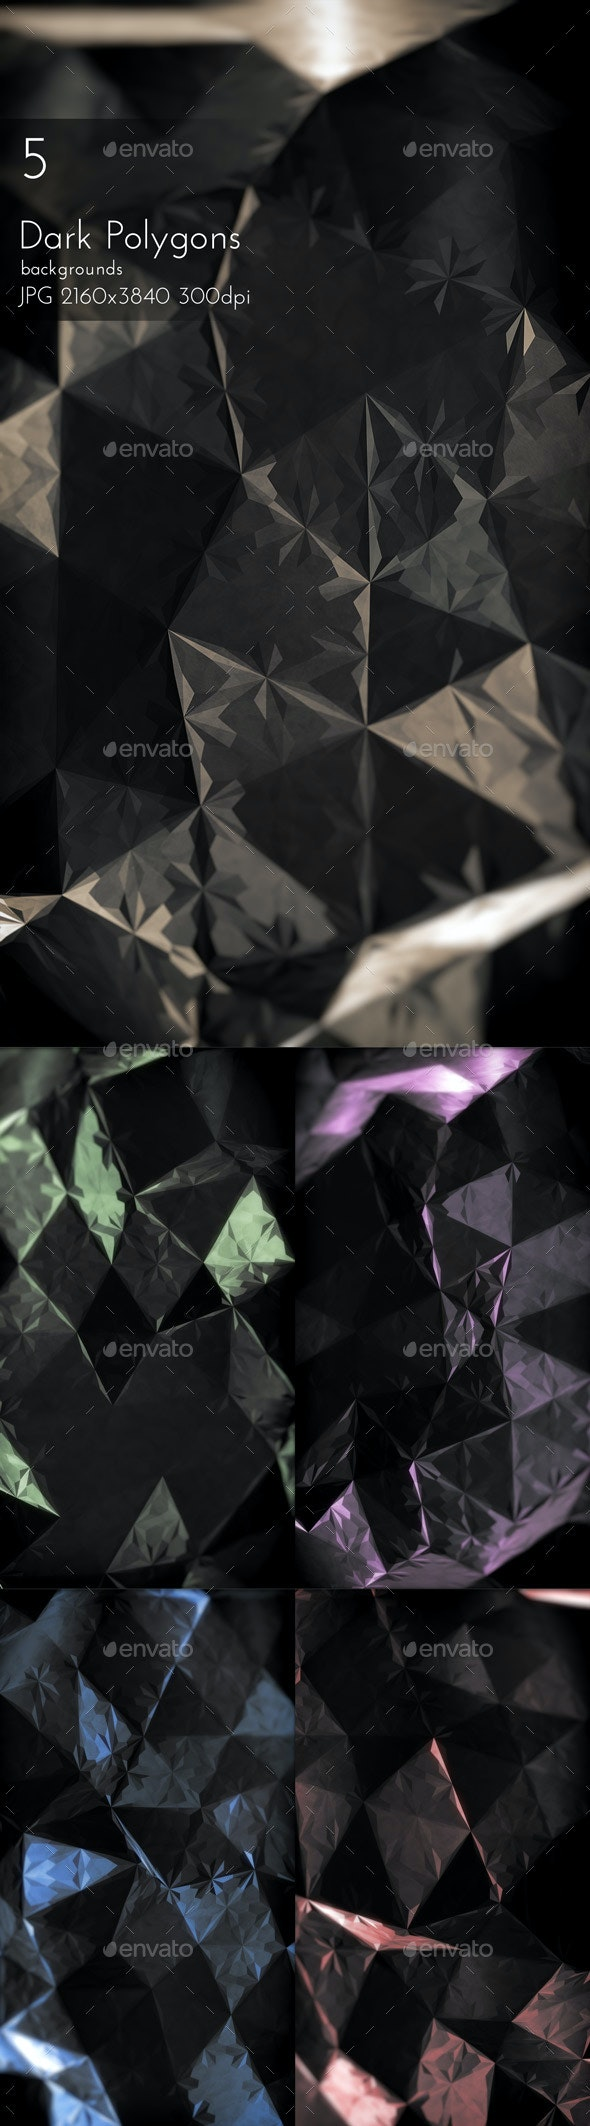 Dark Polygons - Abstract Backgrounds